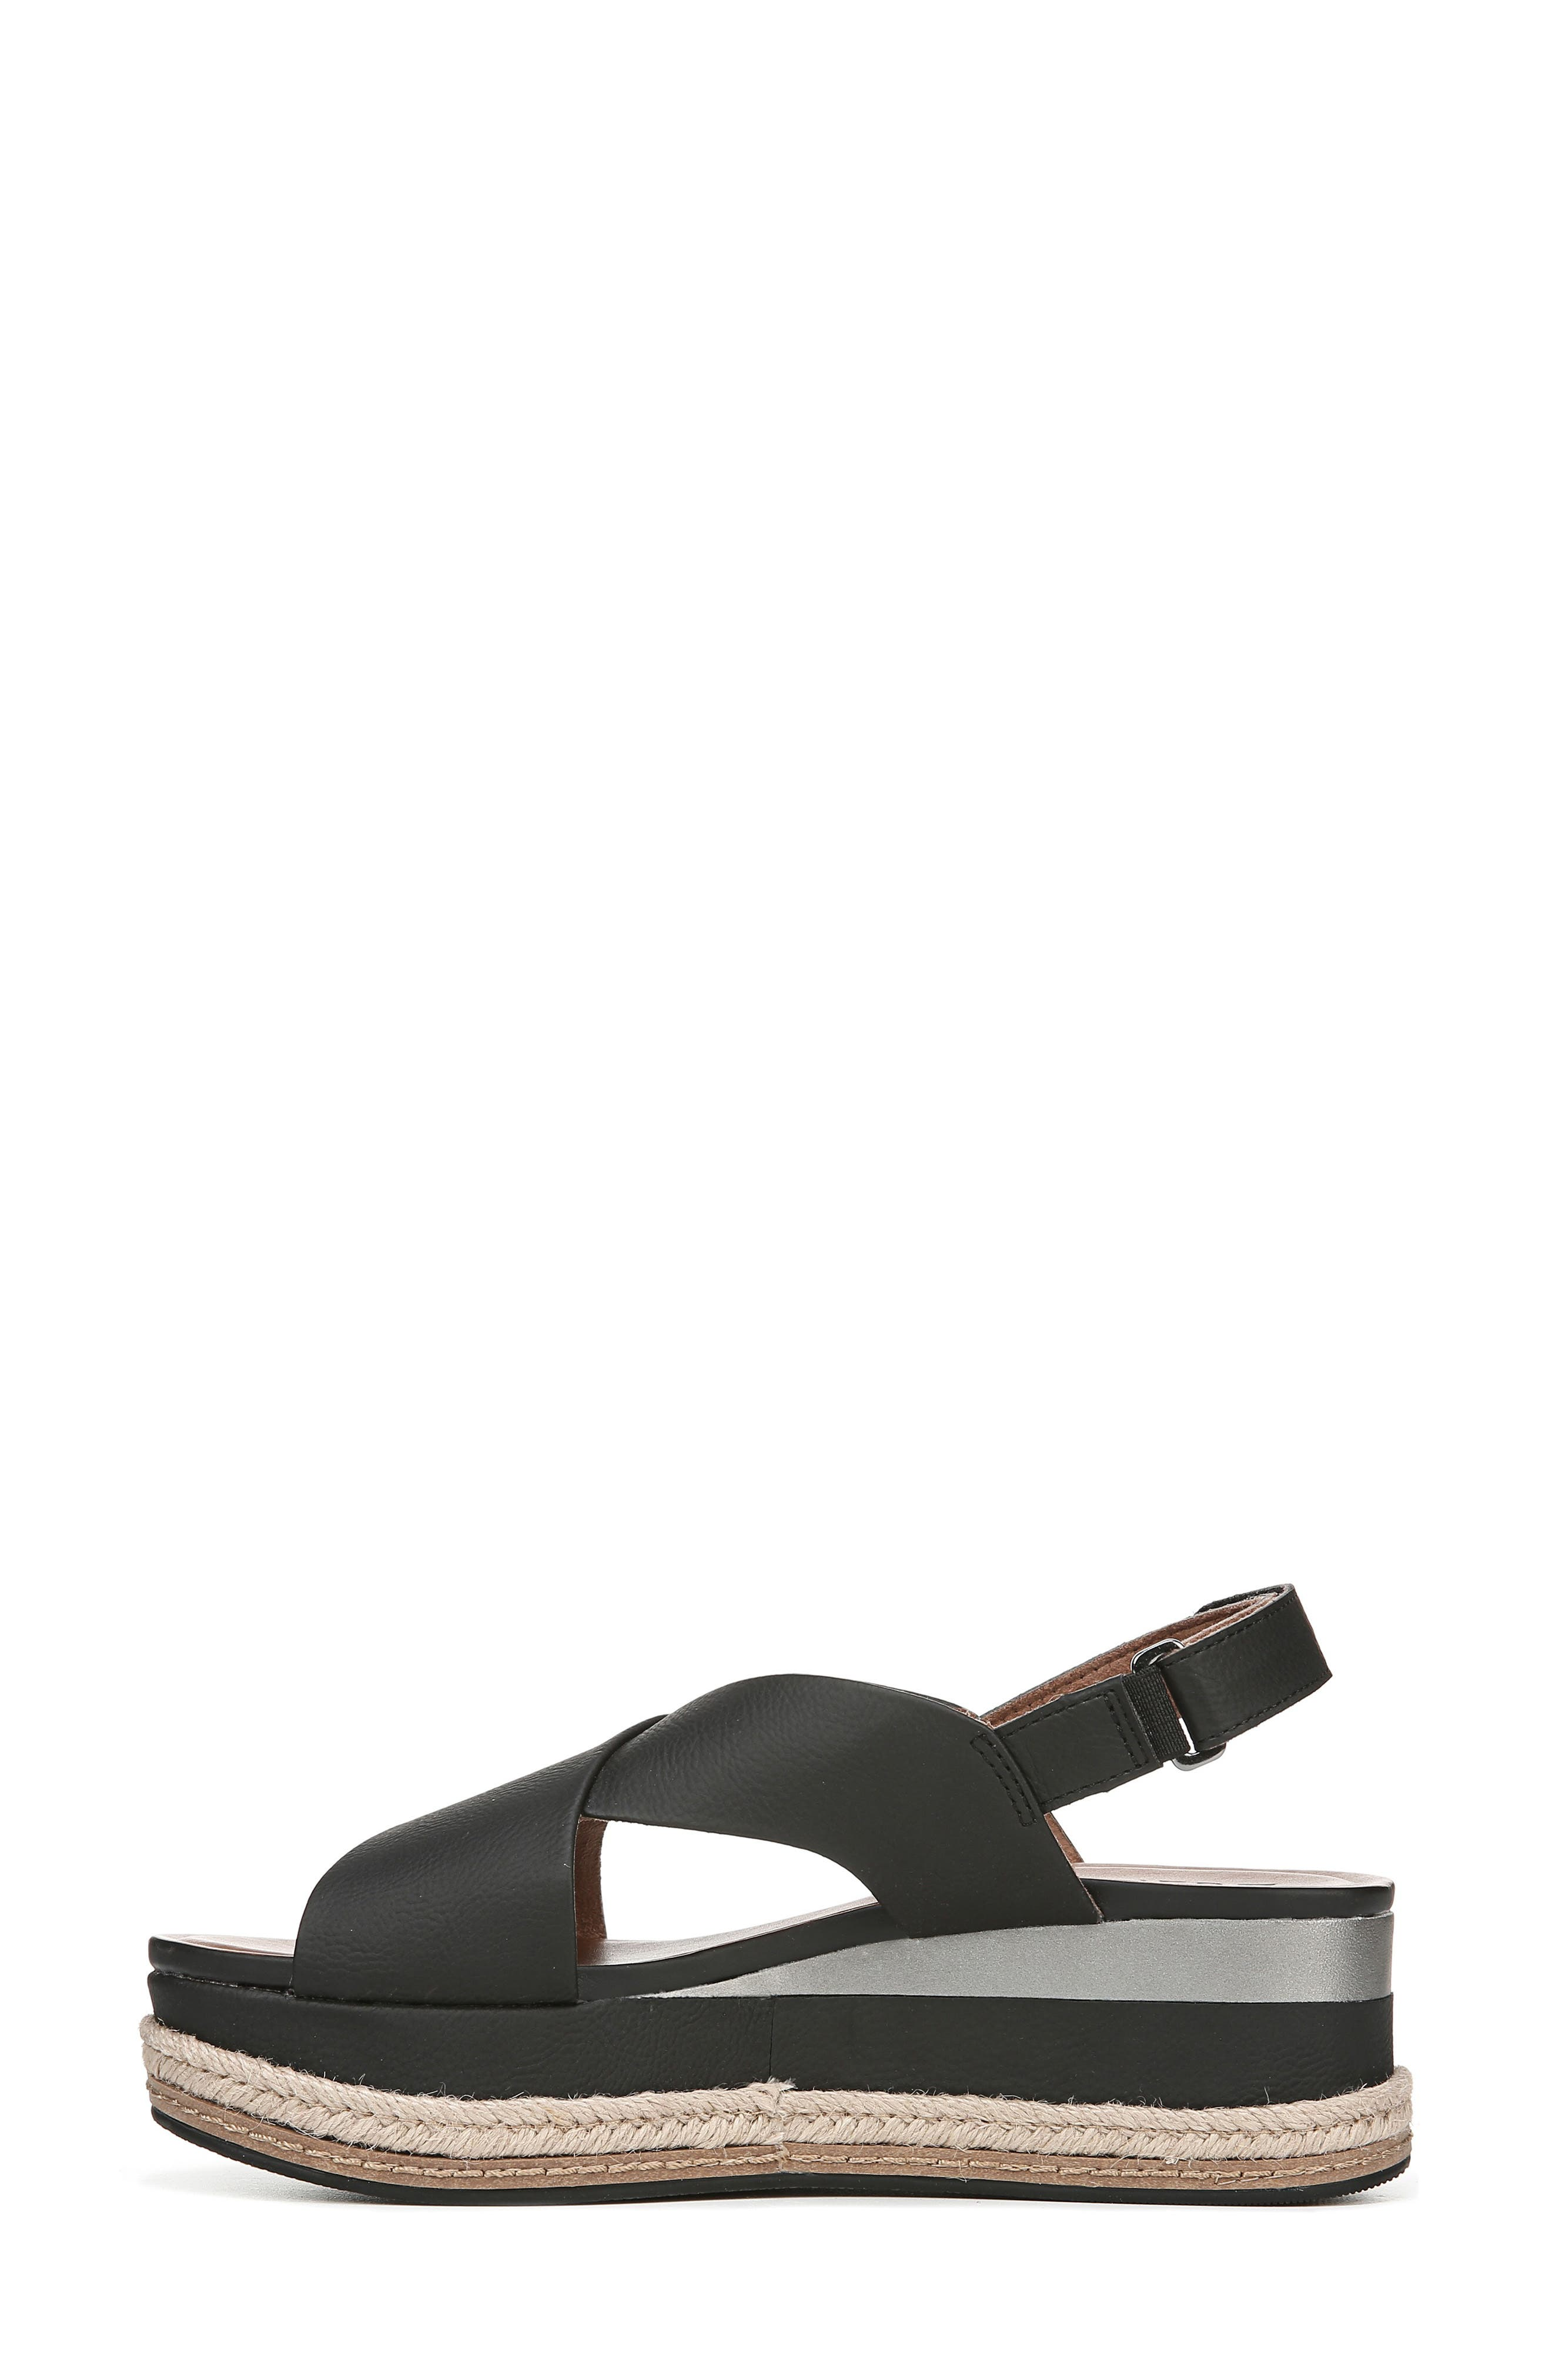 ,                             Baya Espadrille Wedge Sandal,                             Alternate thumbnail 9, color,                             BLACK NUBUCK LEATHER